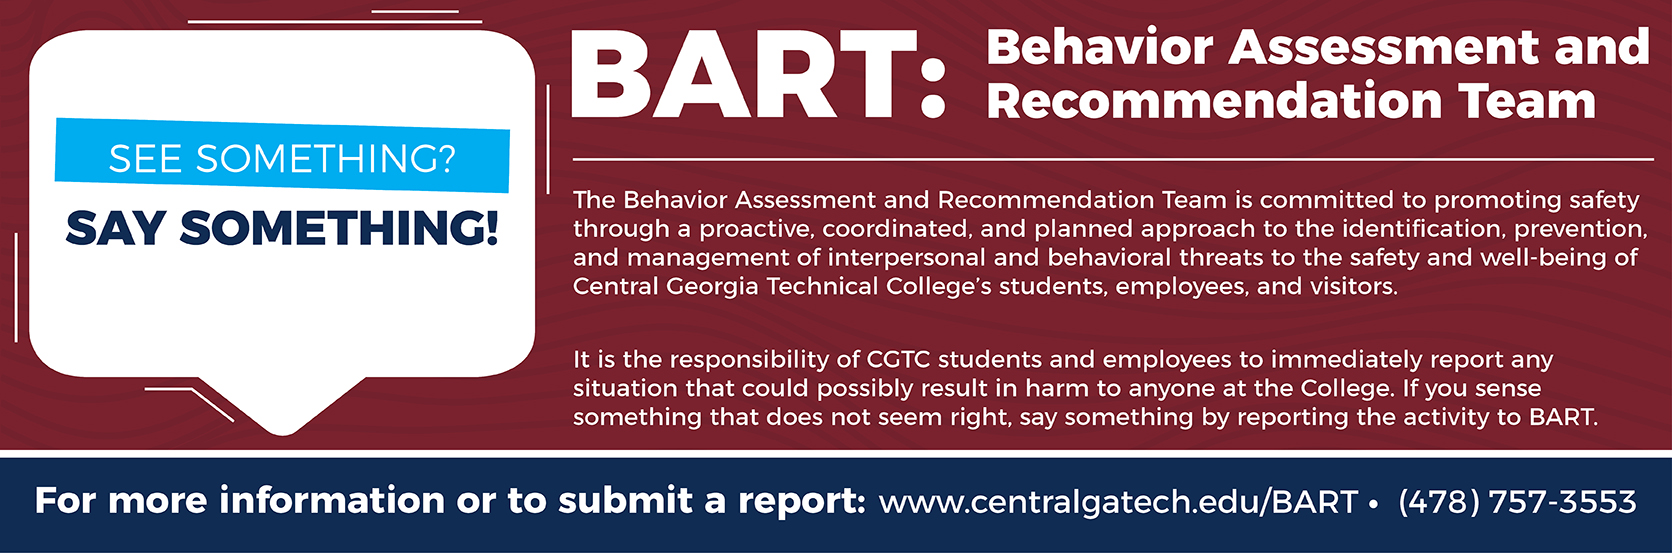 Behavior Assessment and Recommendation Team (BART)